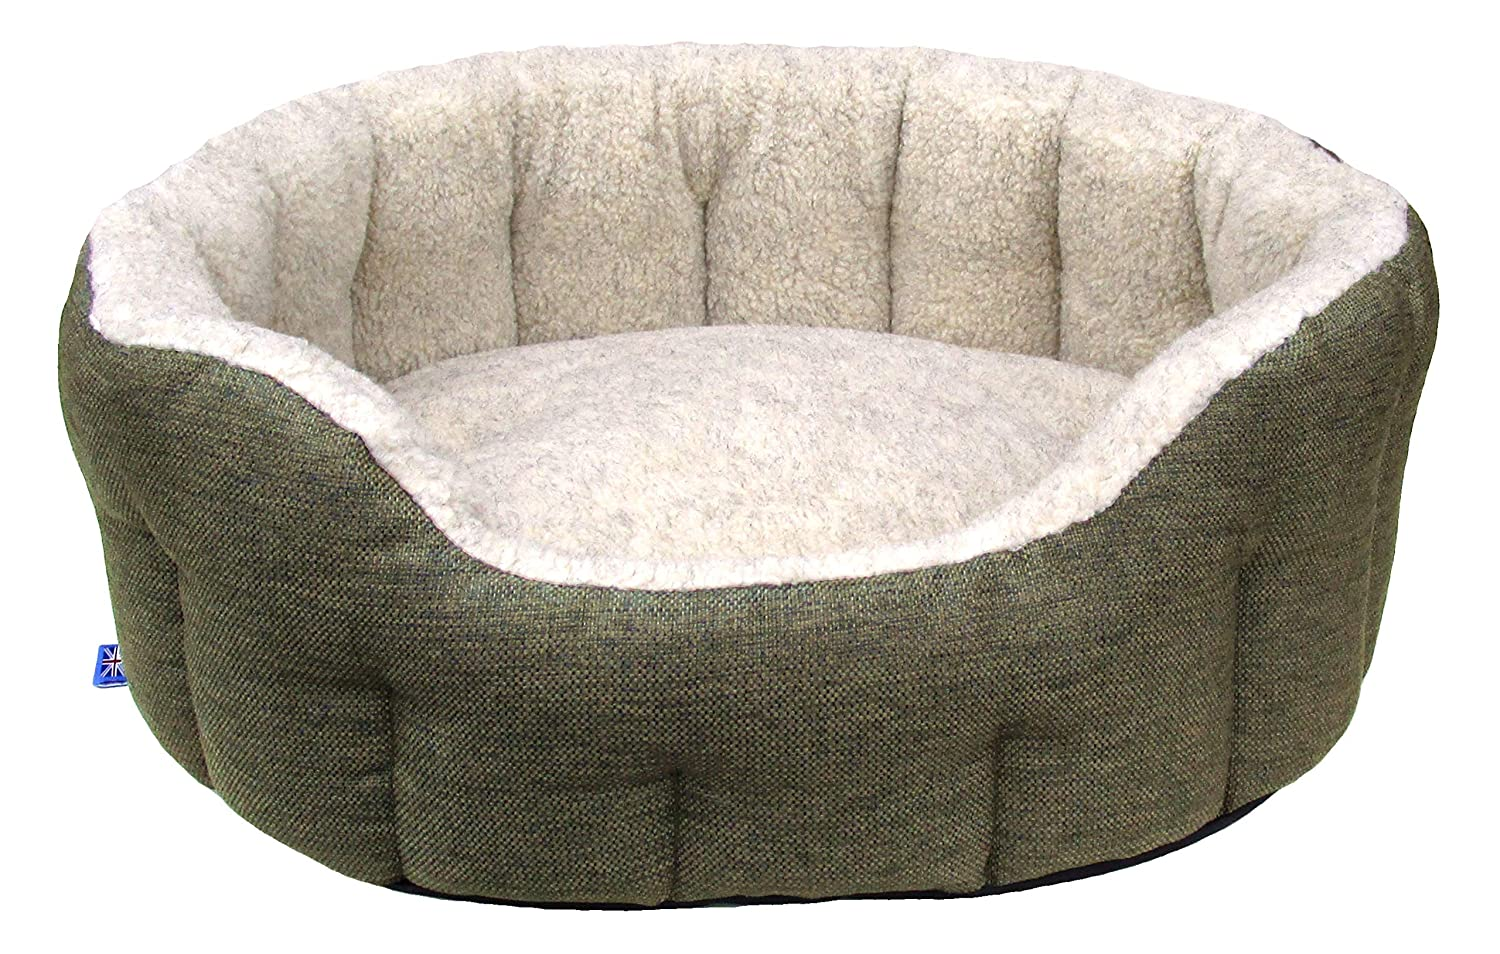 Image result for Tweed Basket Weave With Oatmeal Fleece Softee Dog Bed